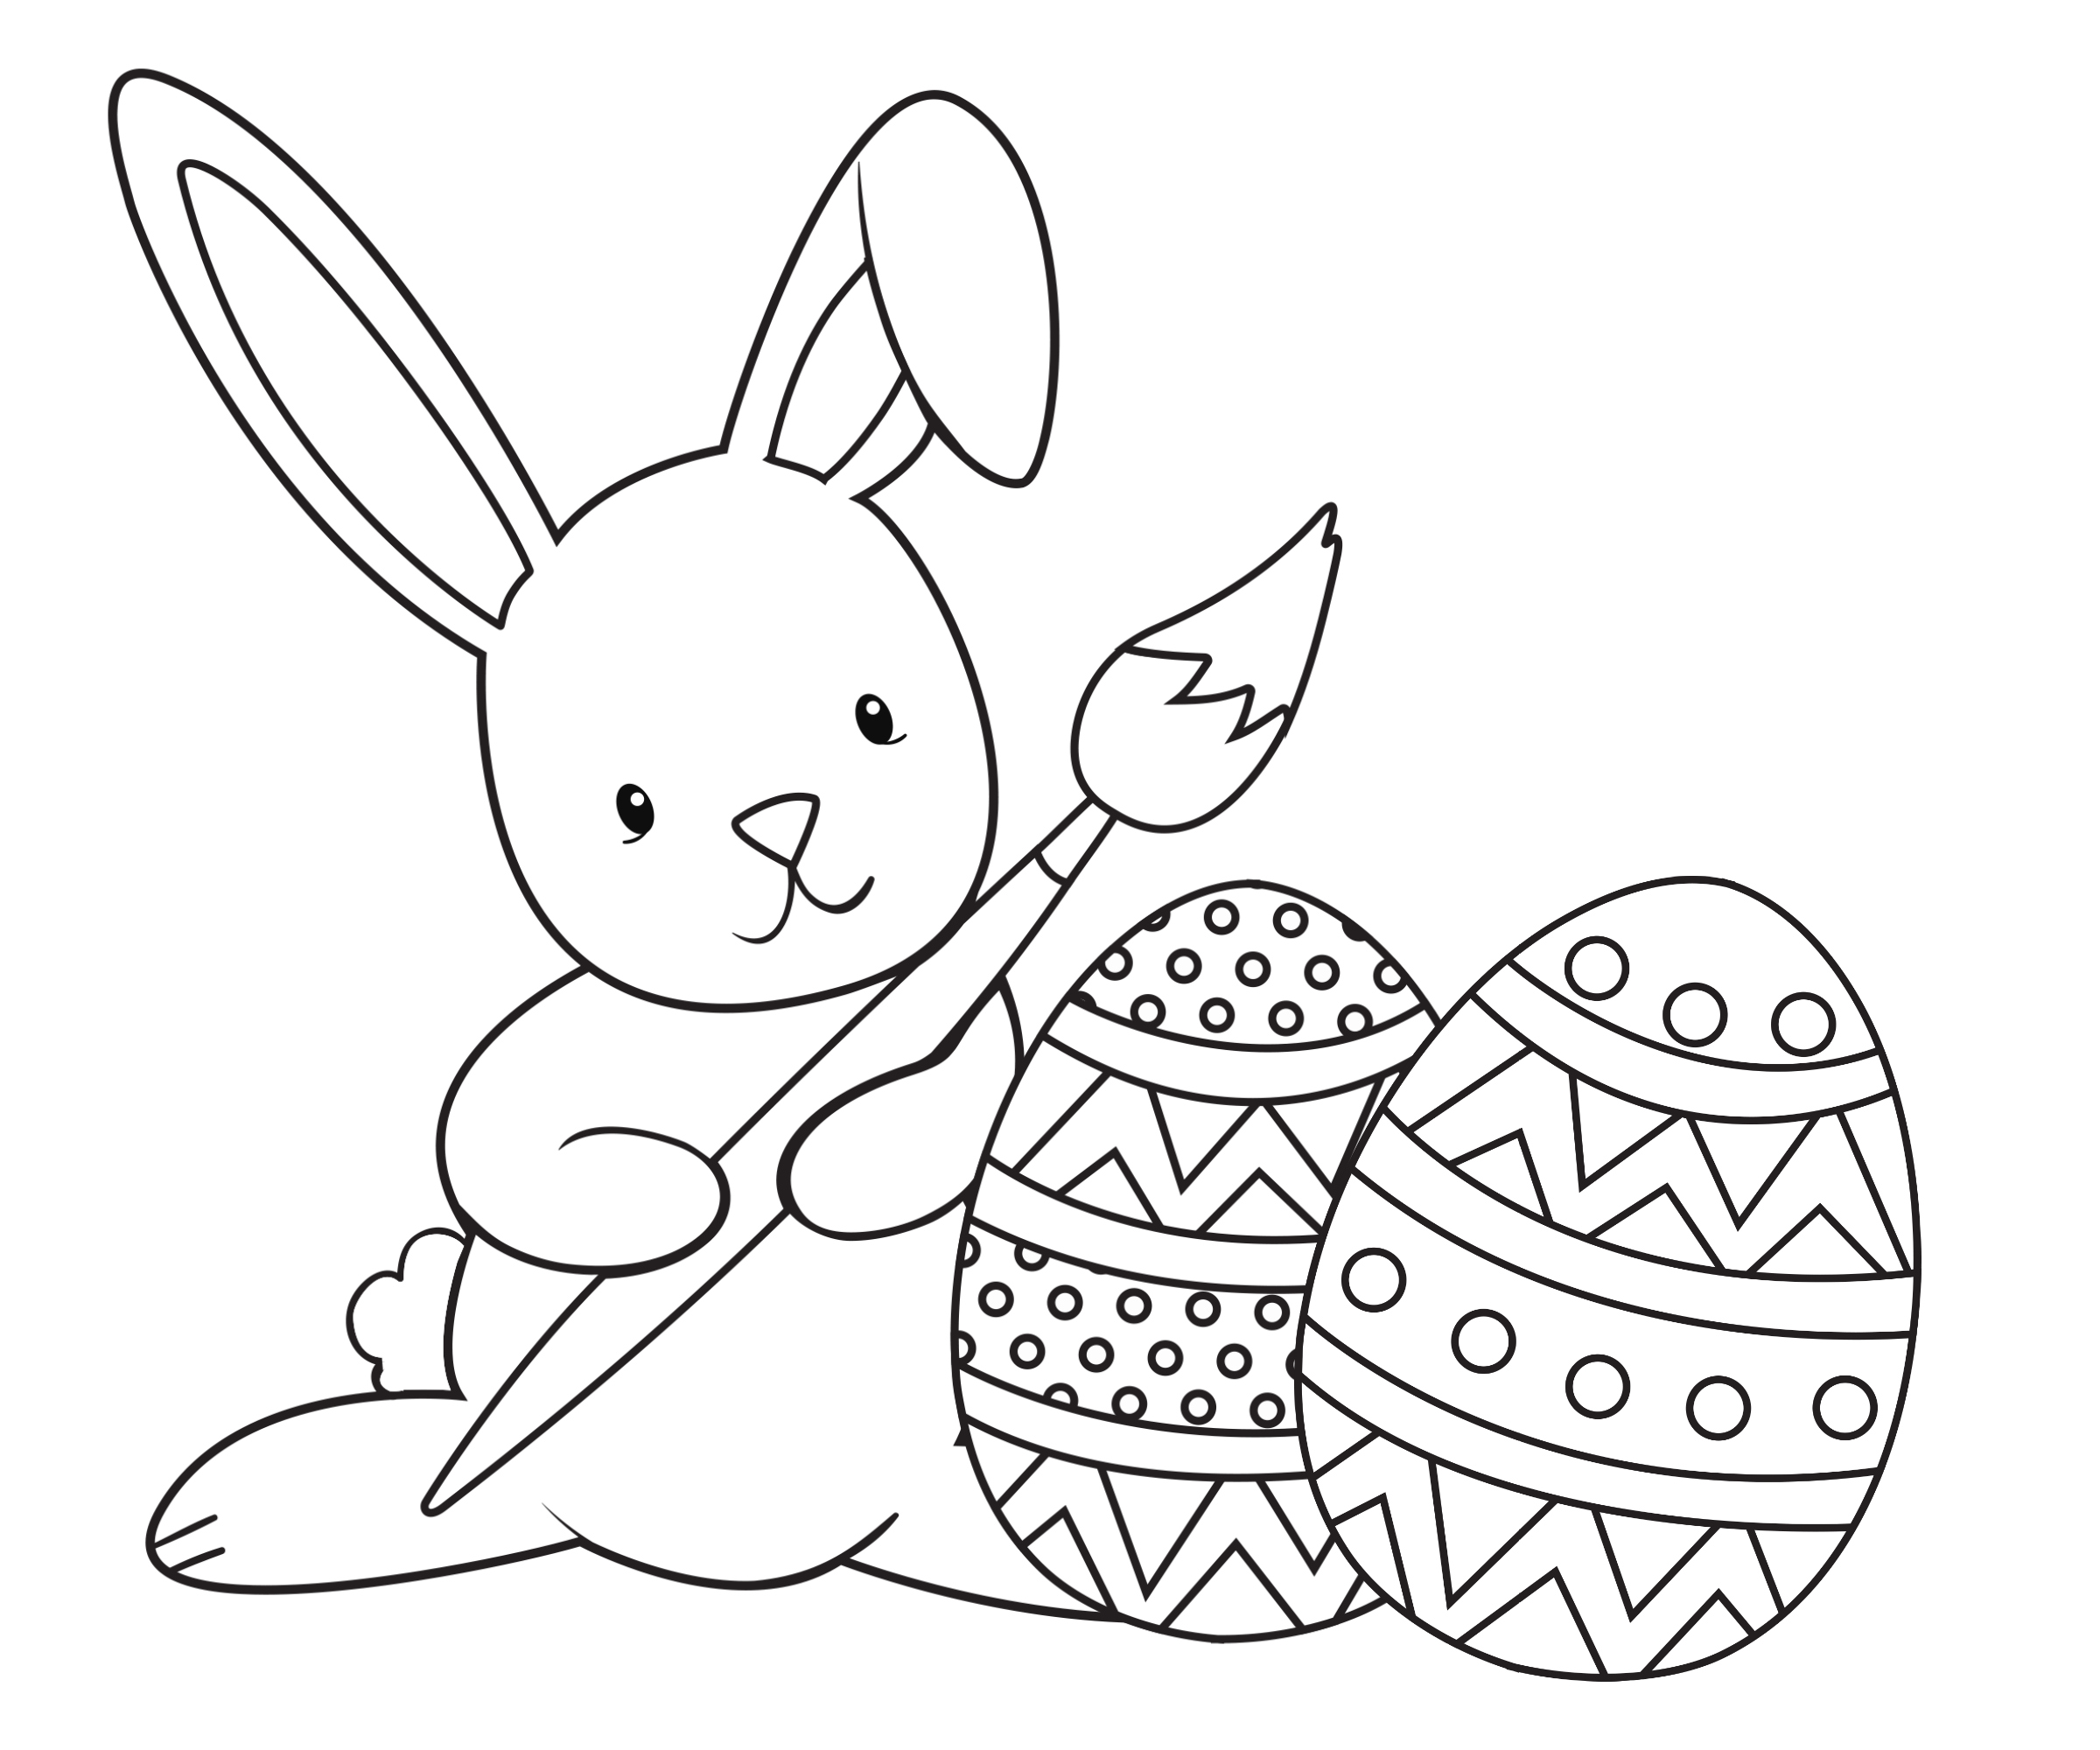 Dramatic image intended for easter egg printable coloring pages